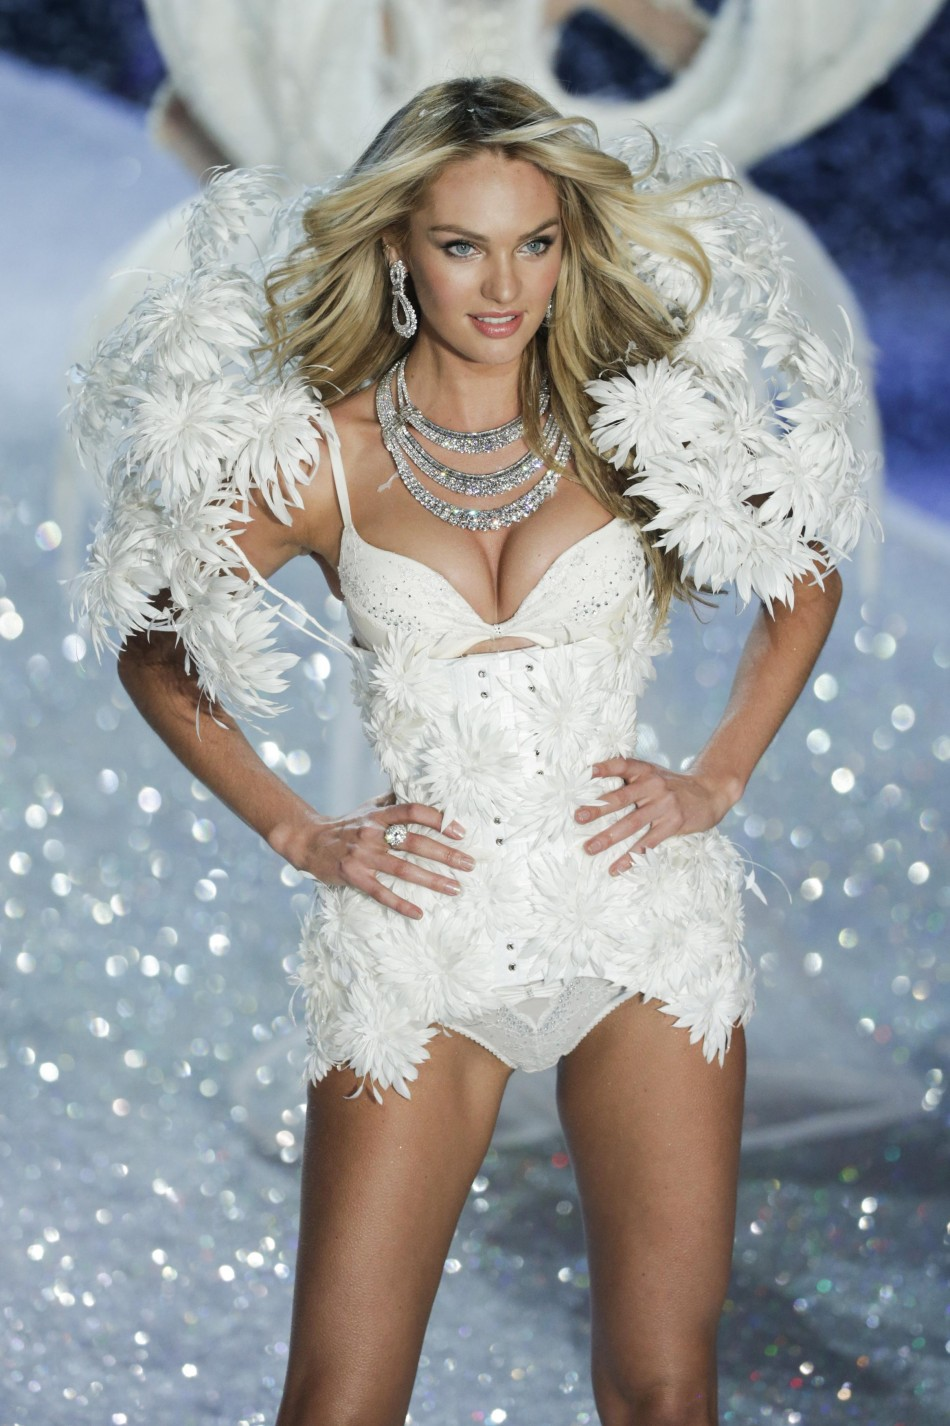 Victoria's Secret Angel Candice Swanepoel Tops Maxim Hot 100 List